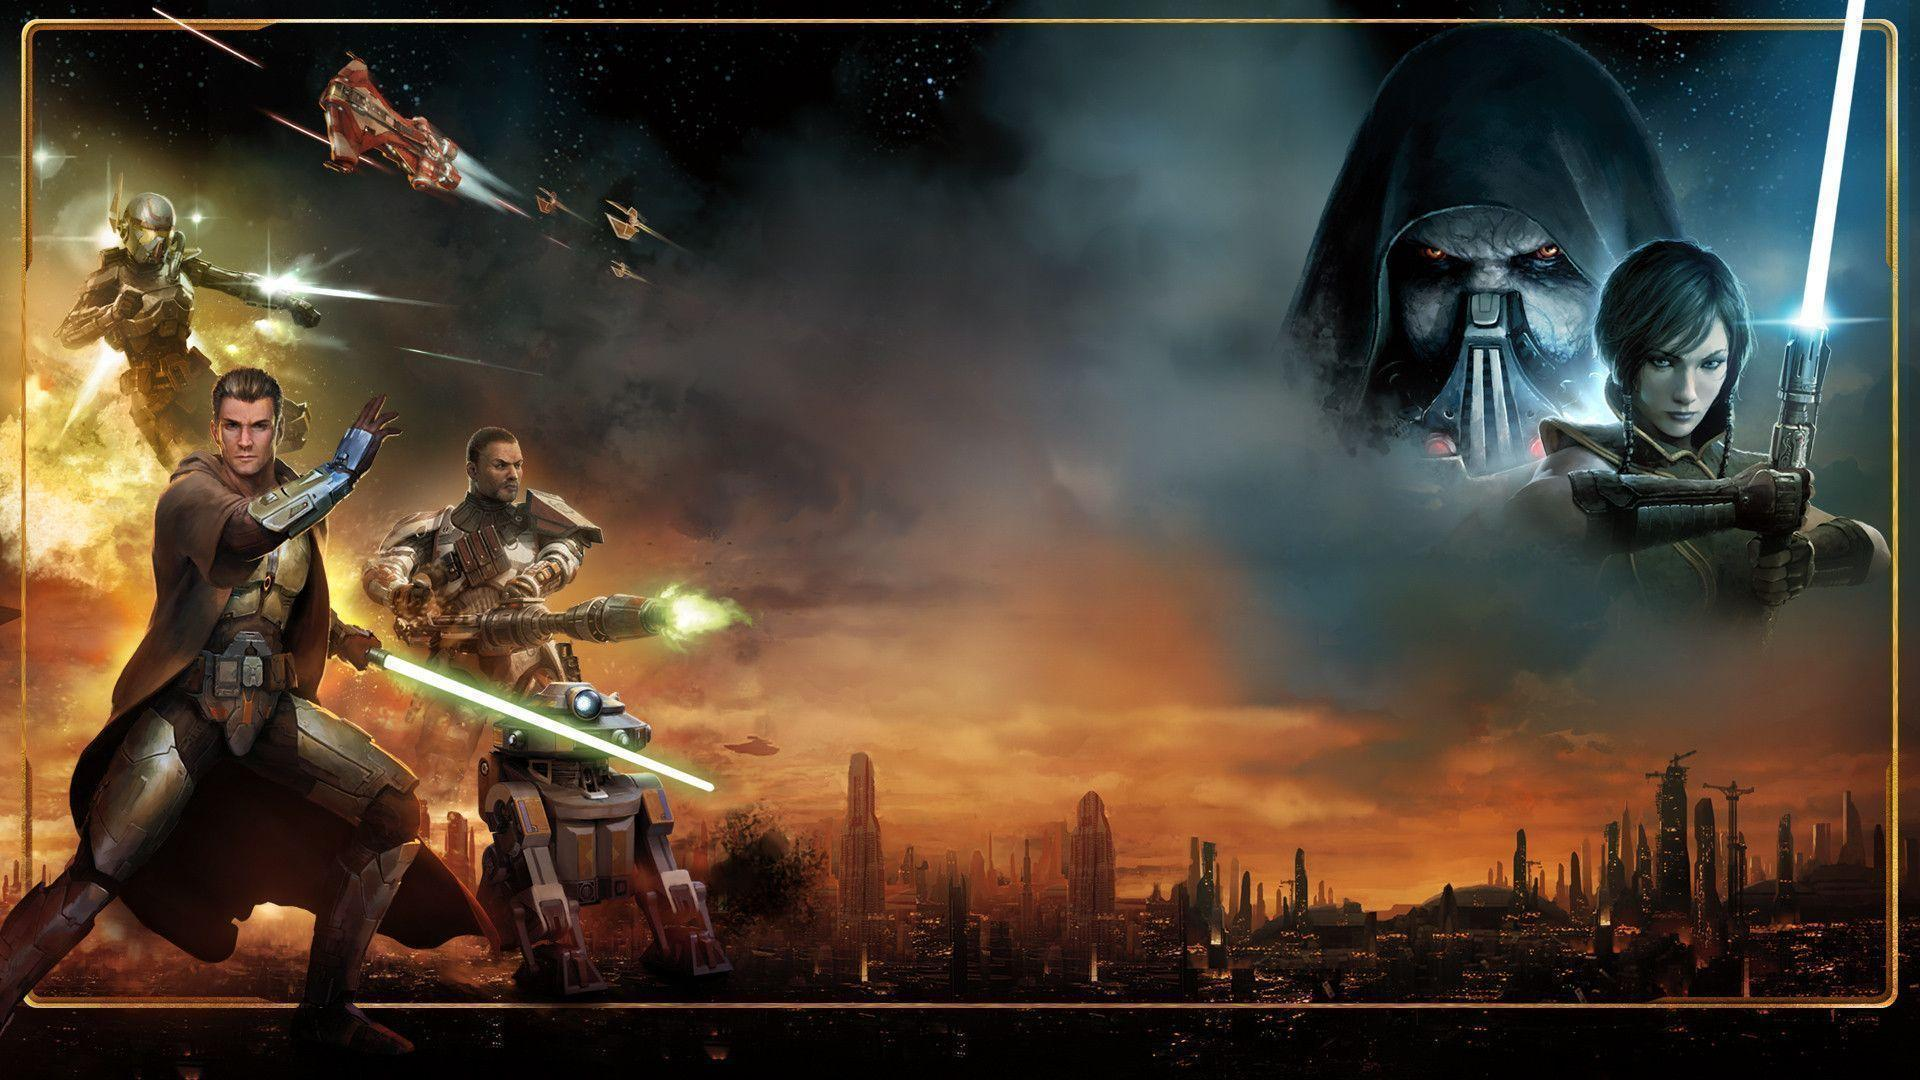 star wars pla wallpapers - photo #10